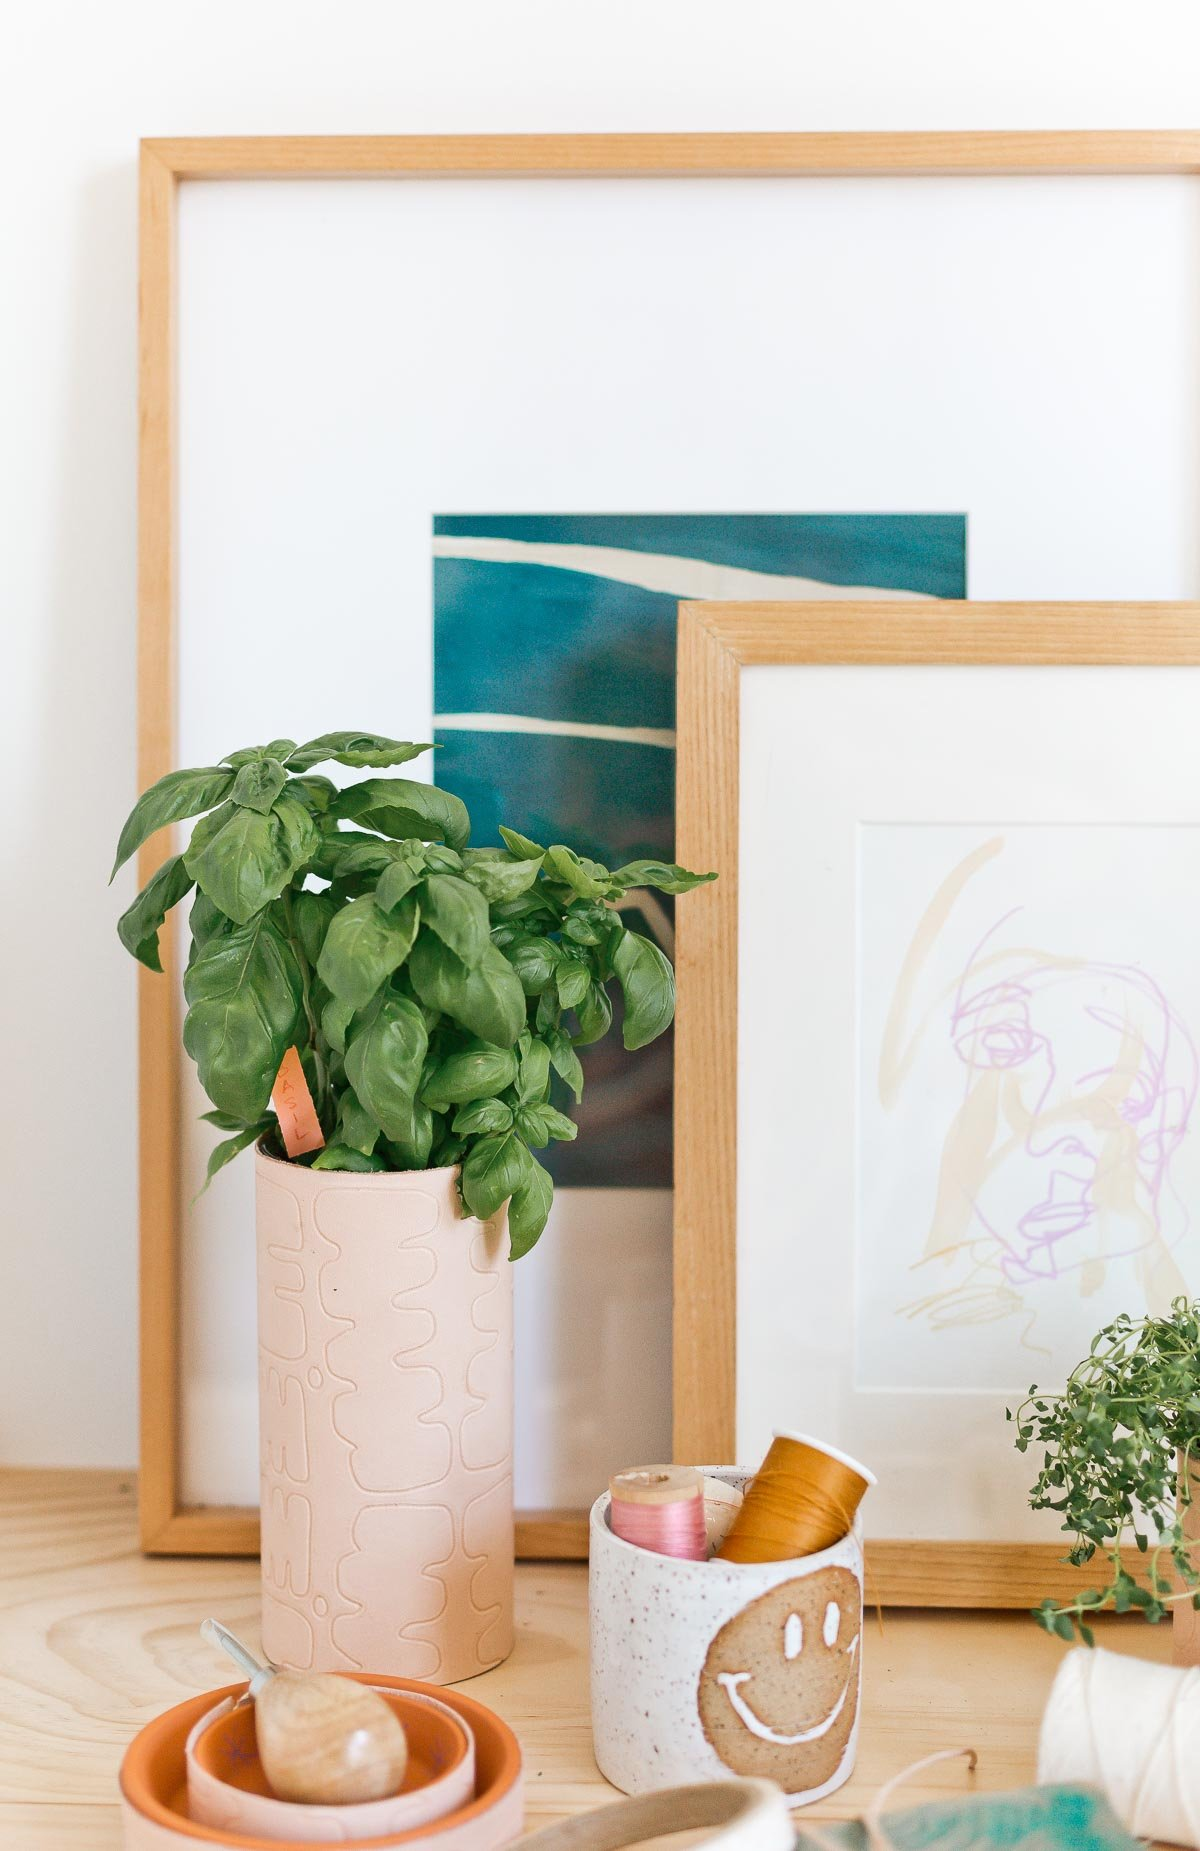 Make a chic indoor herb garden with DIY embossed leather planters that utilize a surprising pantry item. Looks cute on a windowsill or even on your desk. #leather #diy #leatherdiy #homedecor #workspace #desk #indoorherbgarden #polkadot #herbs